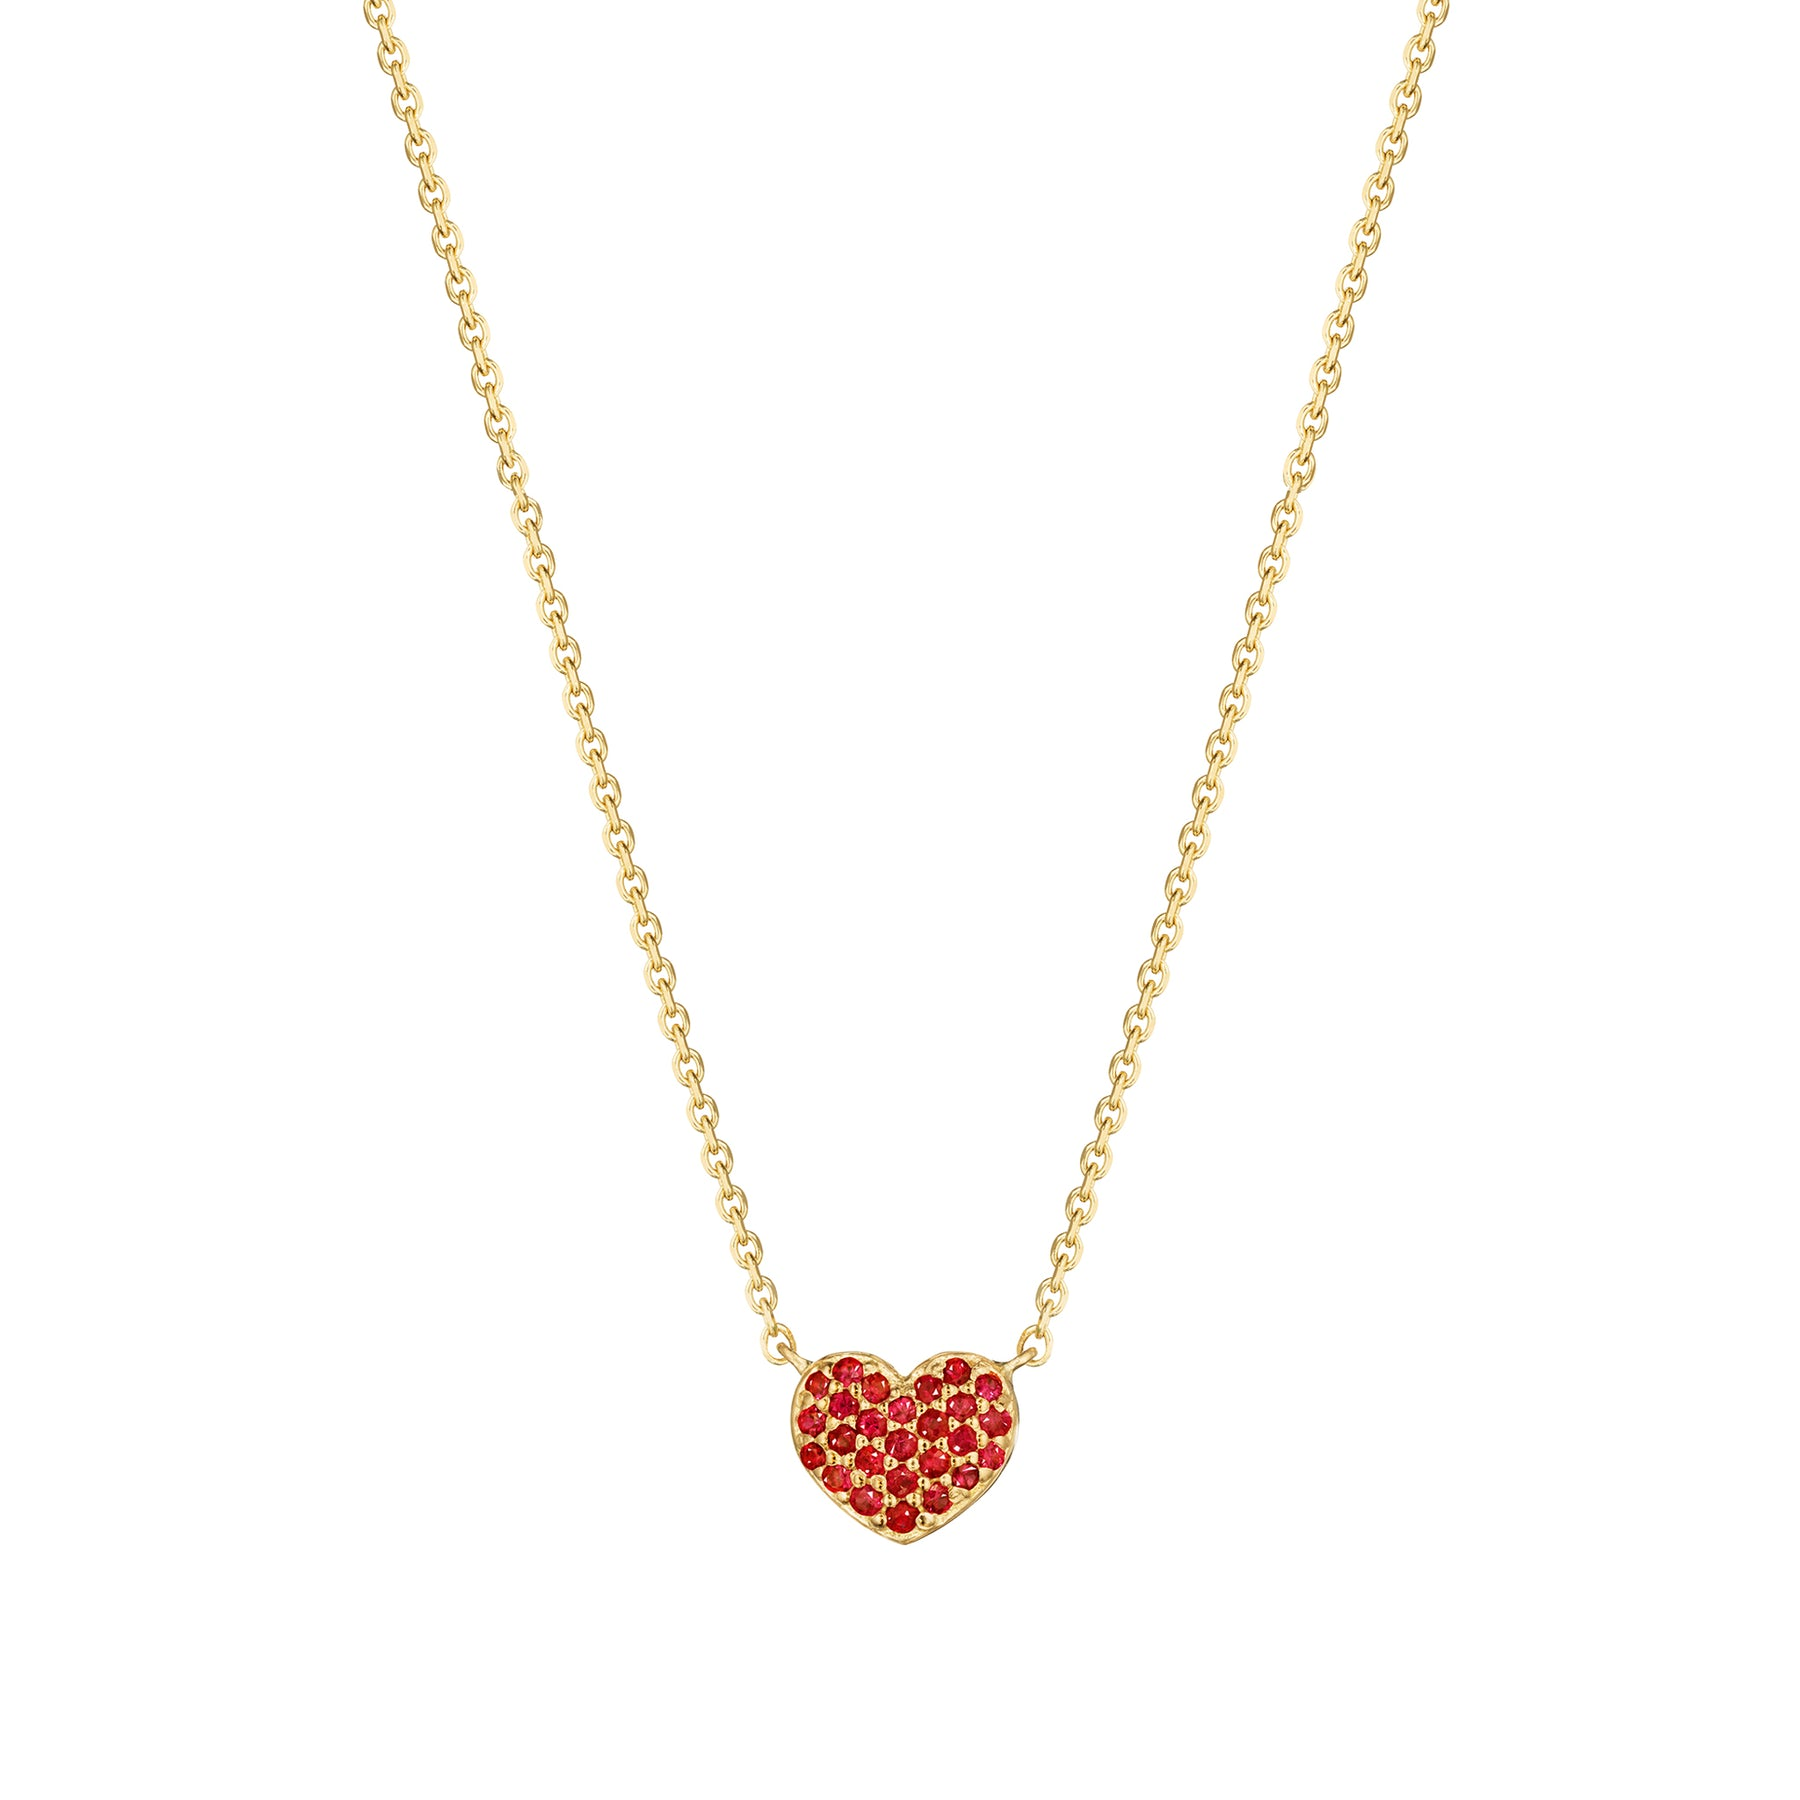 Mimi-So-Pave-Ruby-Heart-Pendant-Necklace_18k Yellow Gold